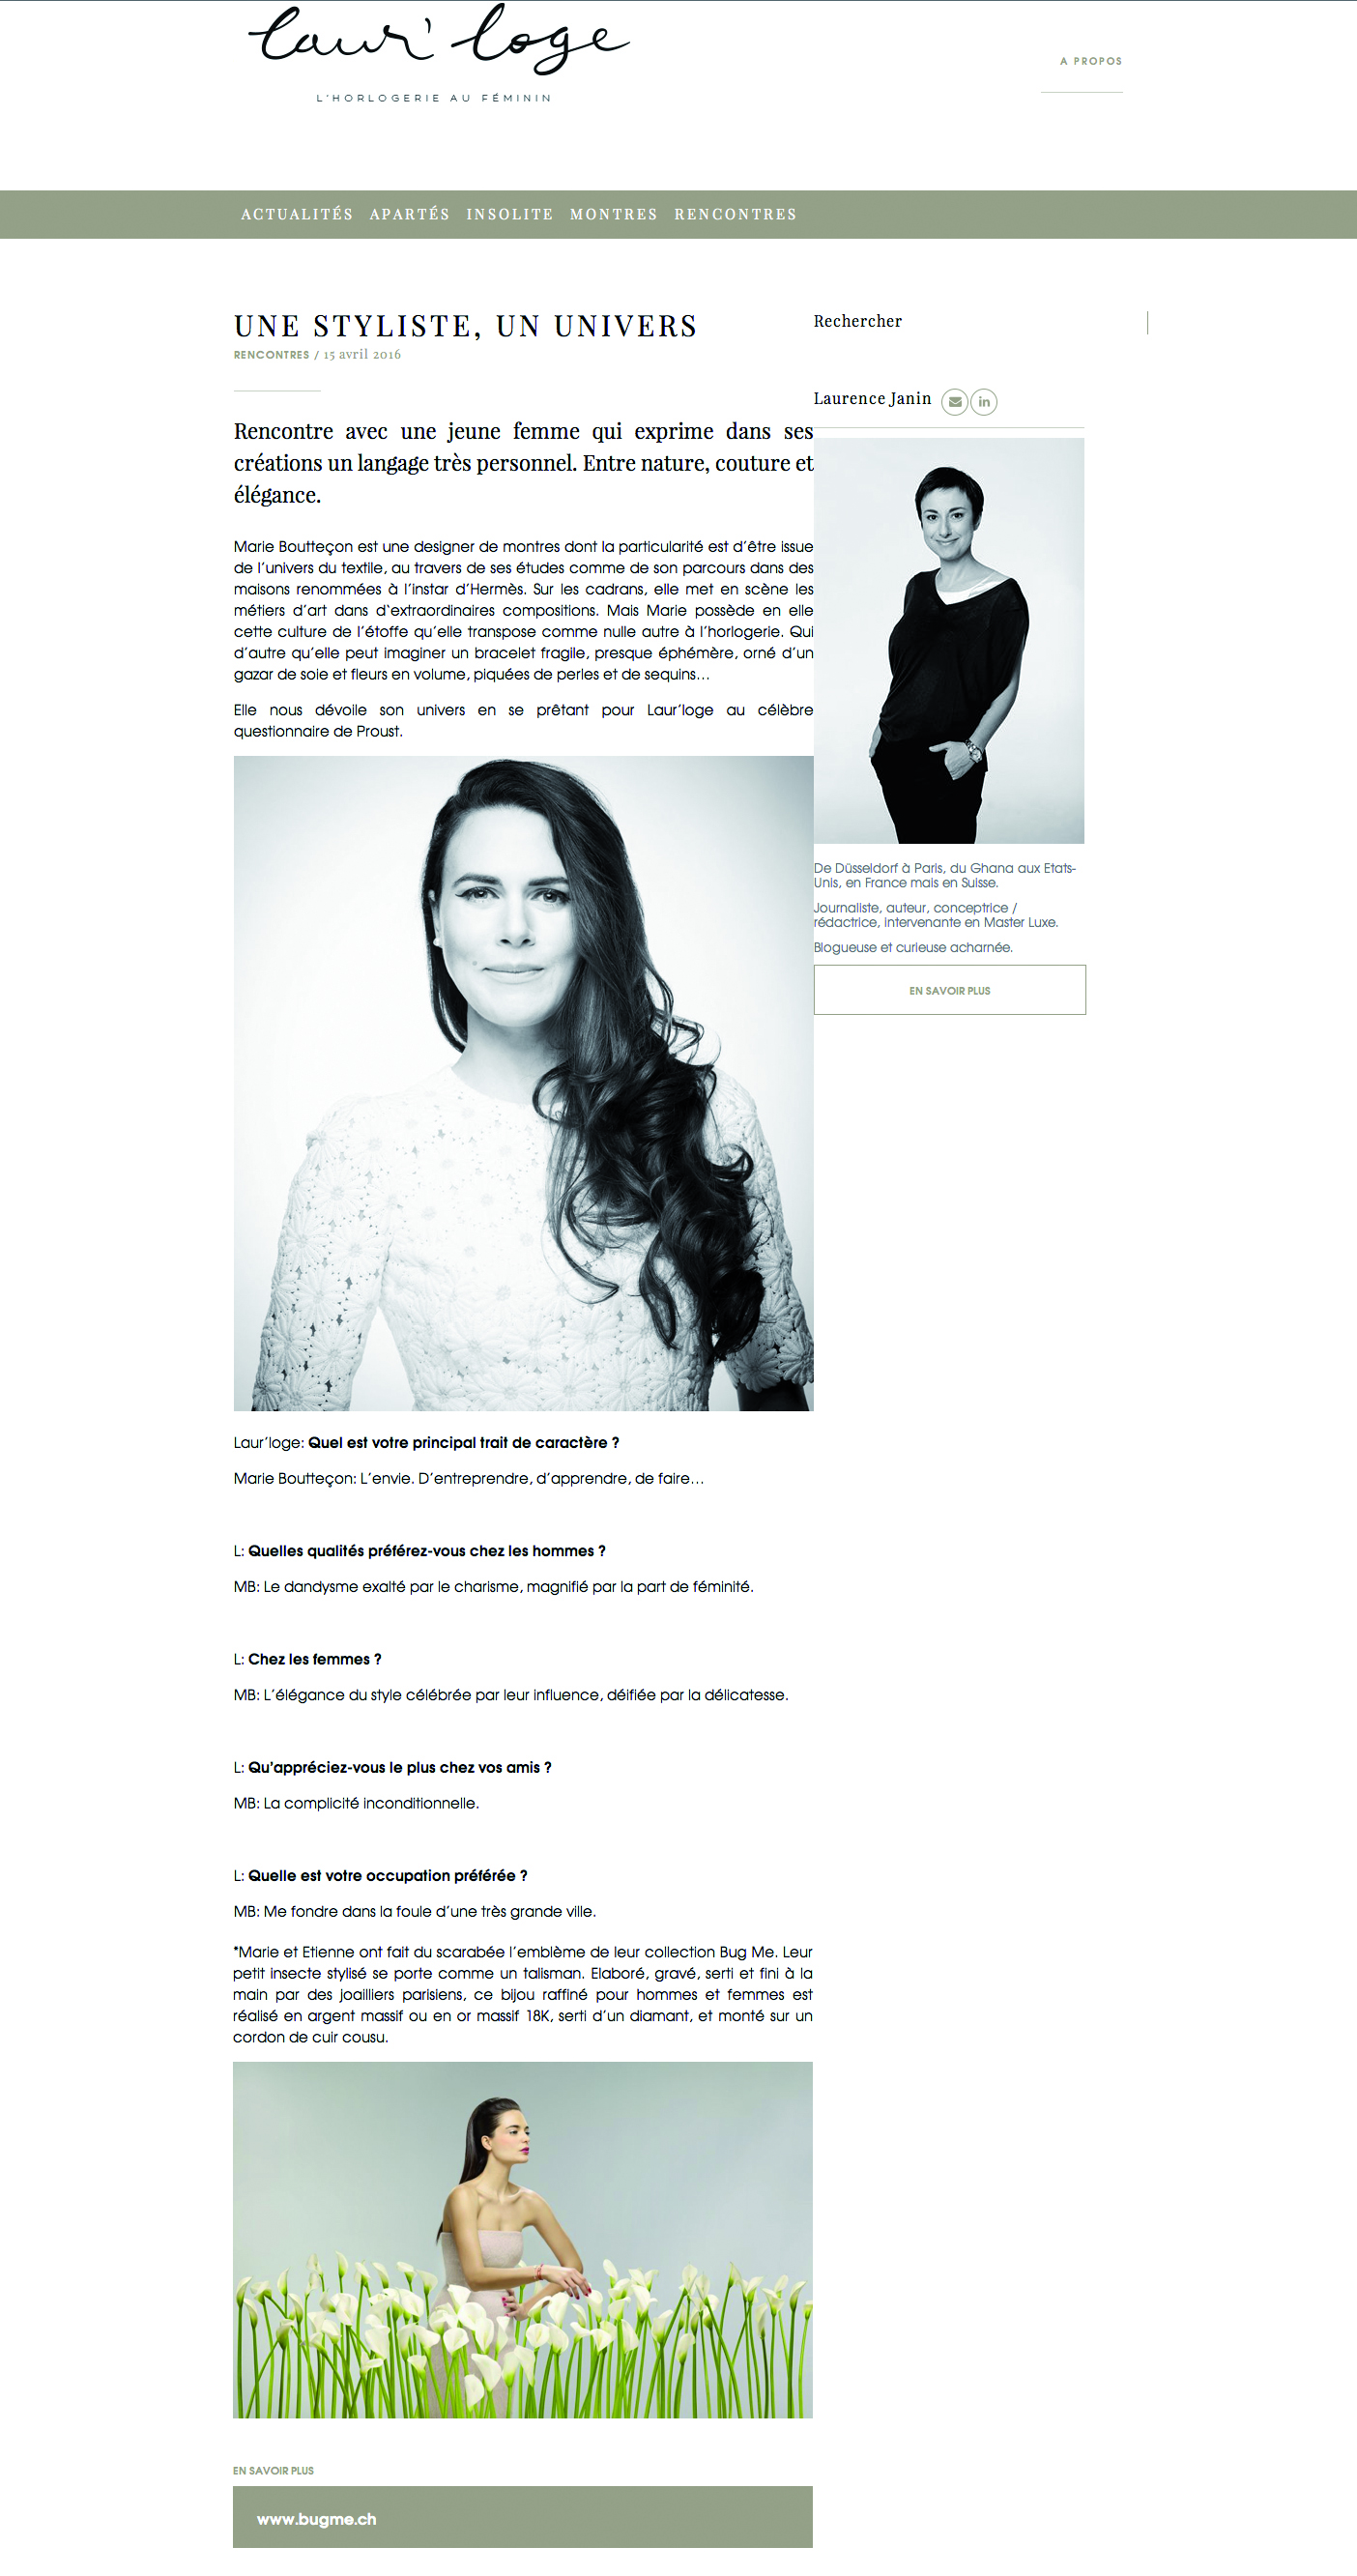 Here is the article from Laur'loge, by Laurence Janin, about our 'idea laboratory' and our creation! I suggest you read the article in full and Marie's Proust questionnaire on:http://www.laurloge.com/une-styliste-un-univers/